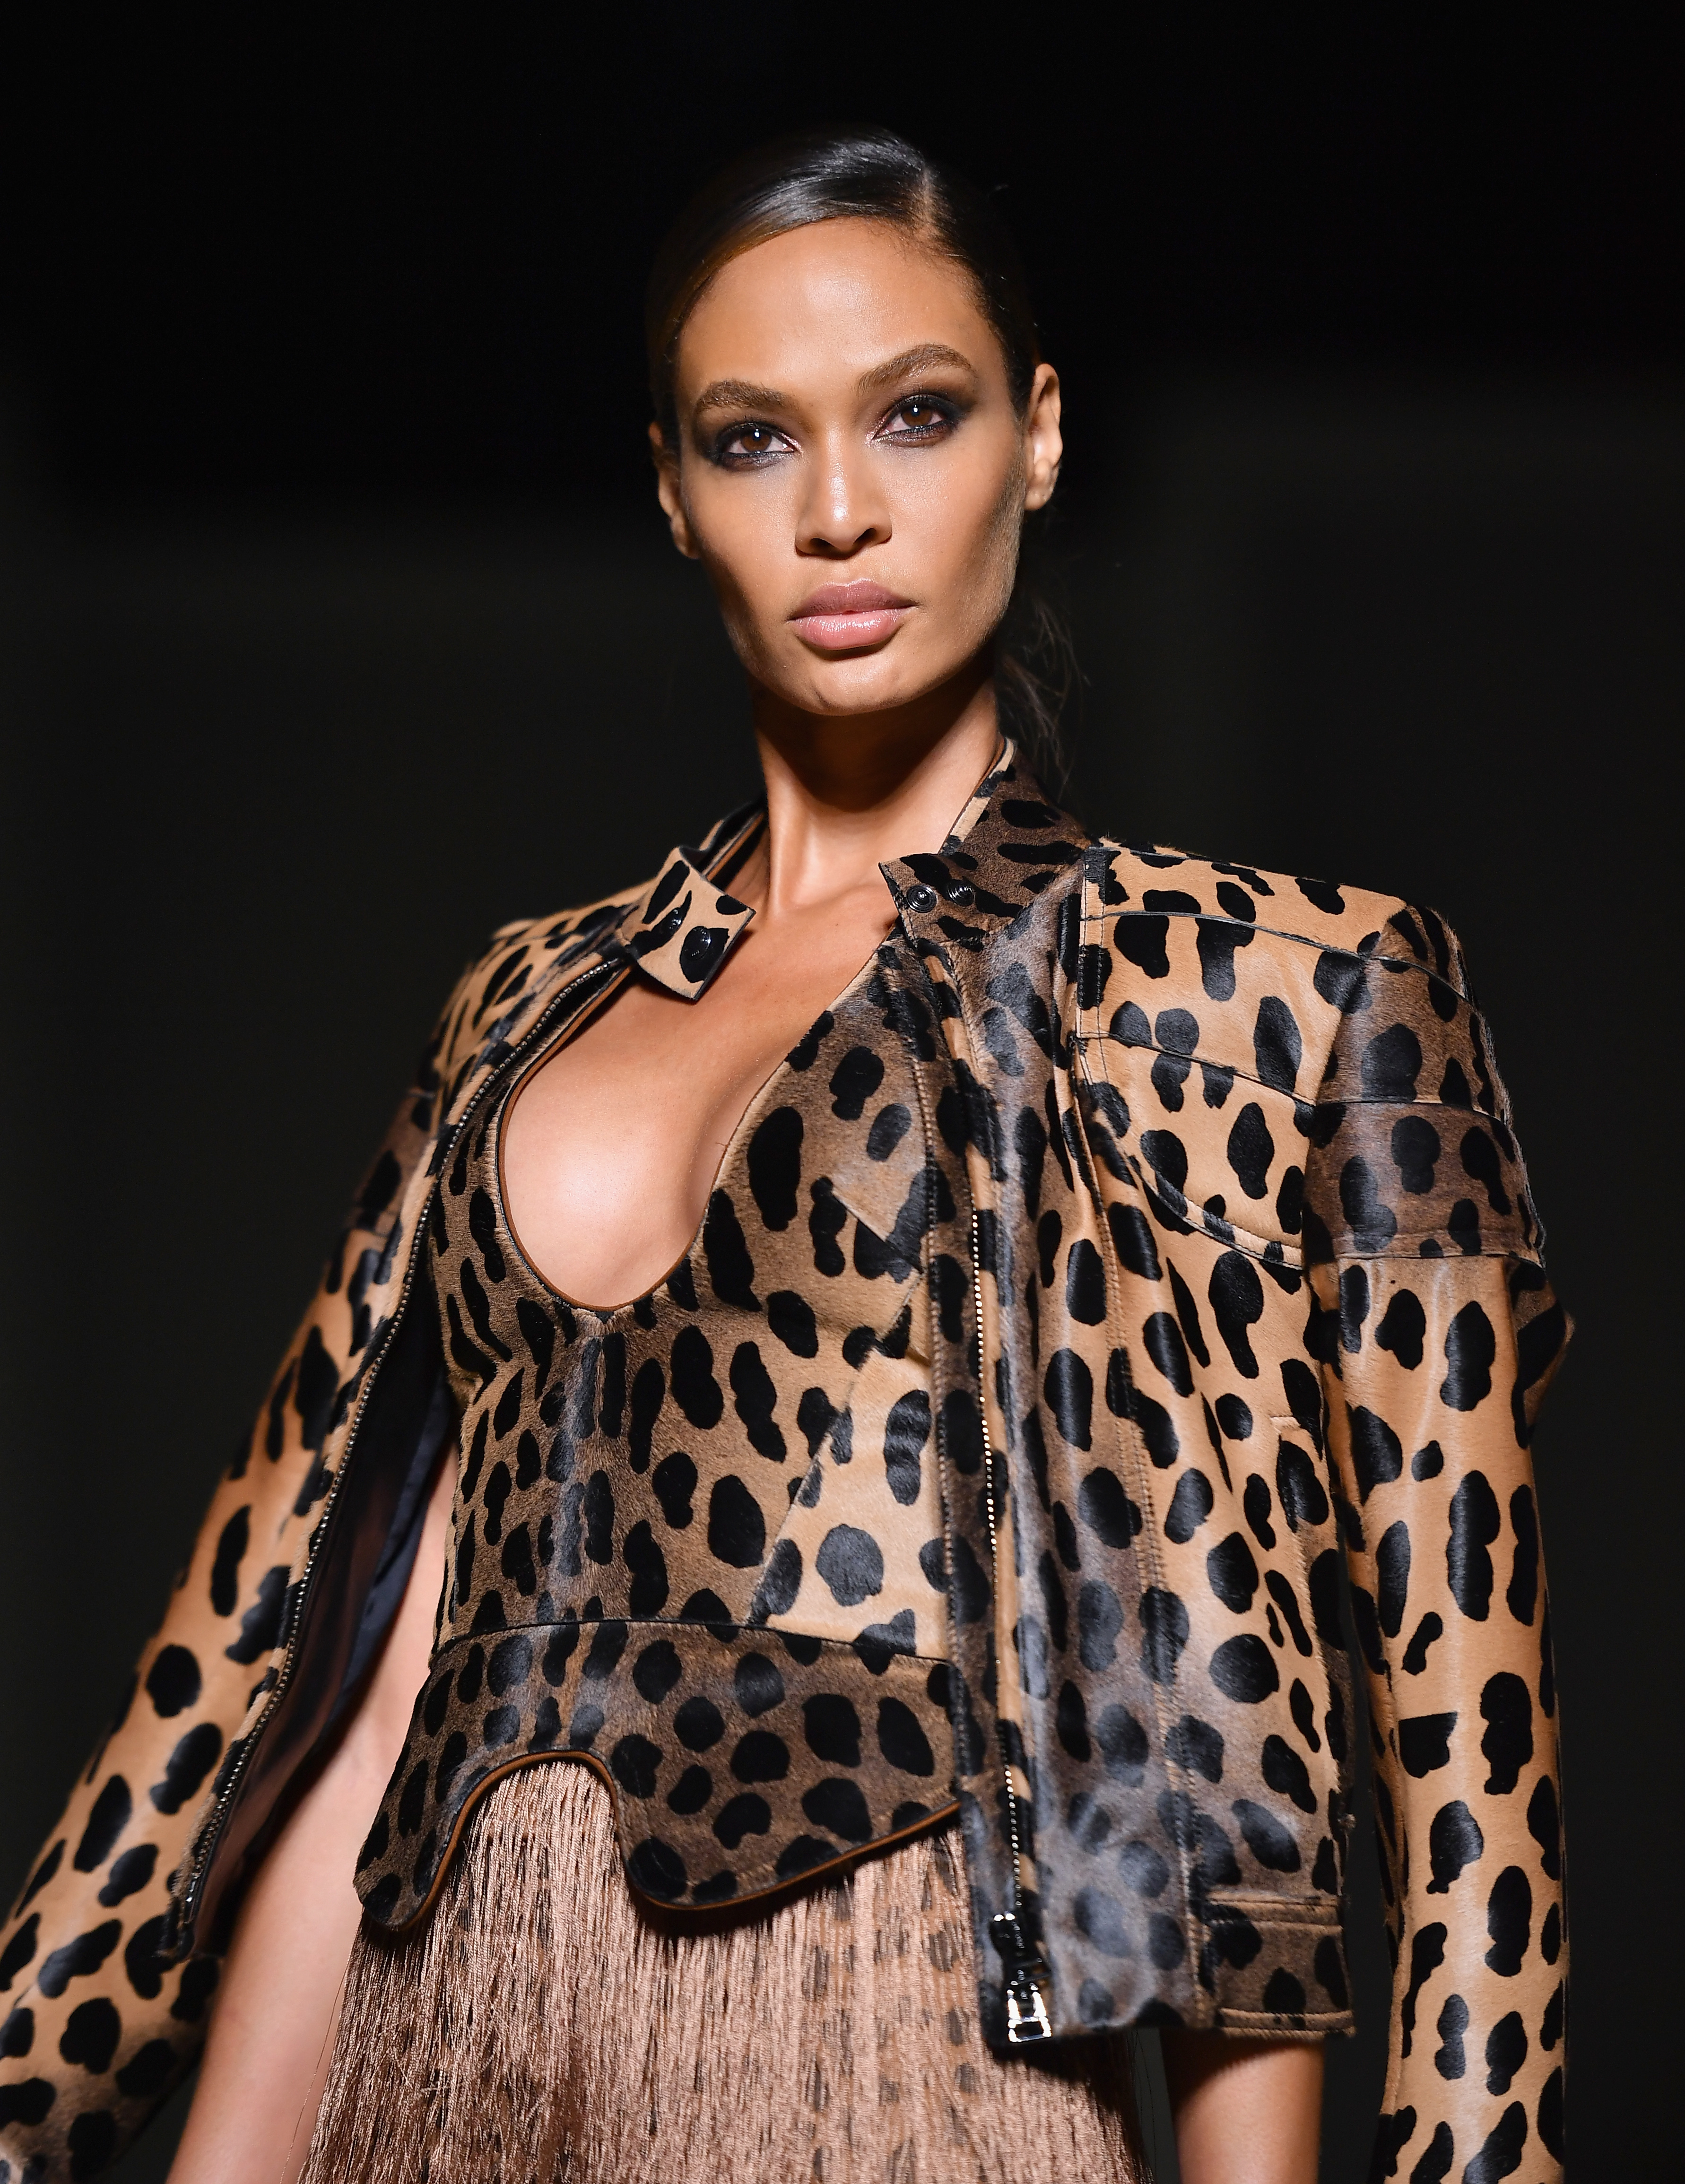 Puerto Rican model Joan Smalls walks the runway at the Tom Ford SS19 Show  at Park Avenue Armory on September 5, 2018 New York City. 4aceb93a7f98